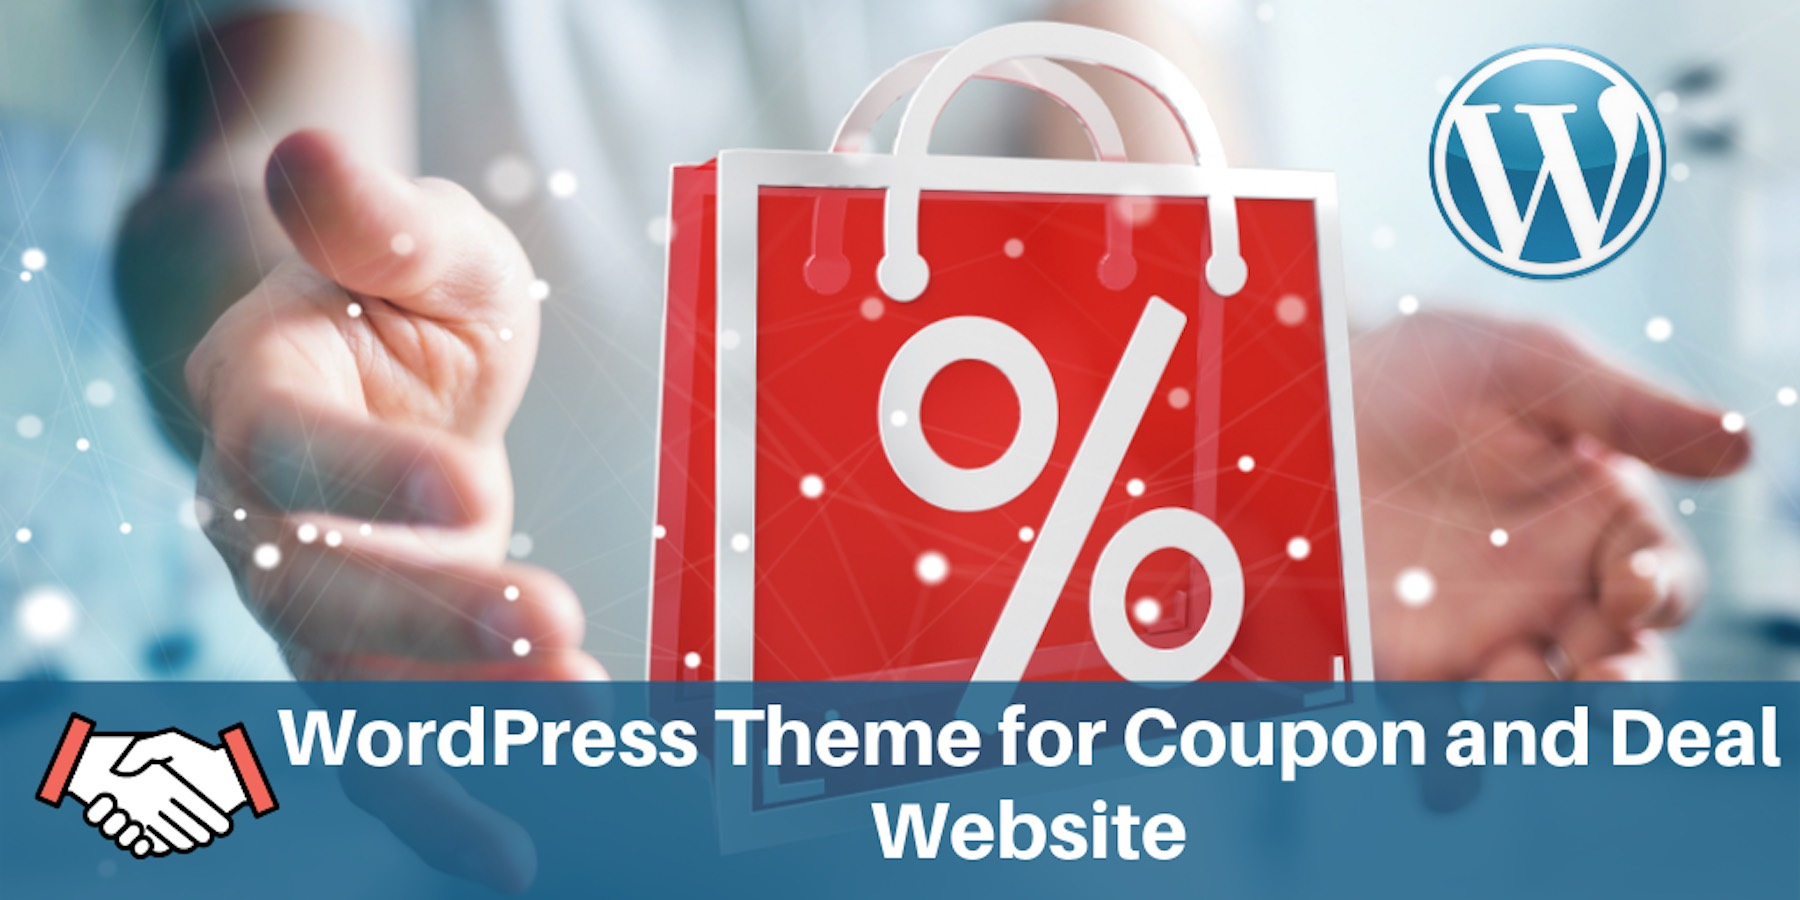 The Awesome List: WordPress Theme for Coupon and Deal Website